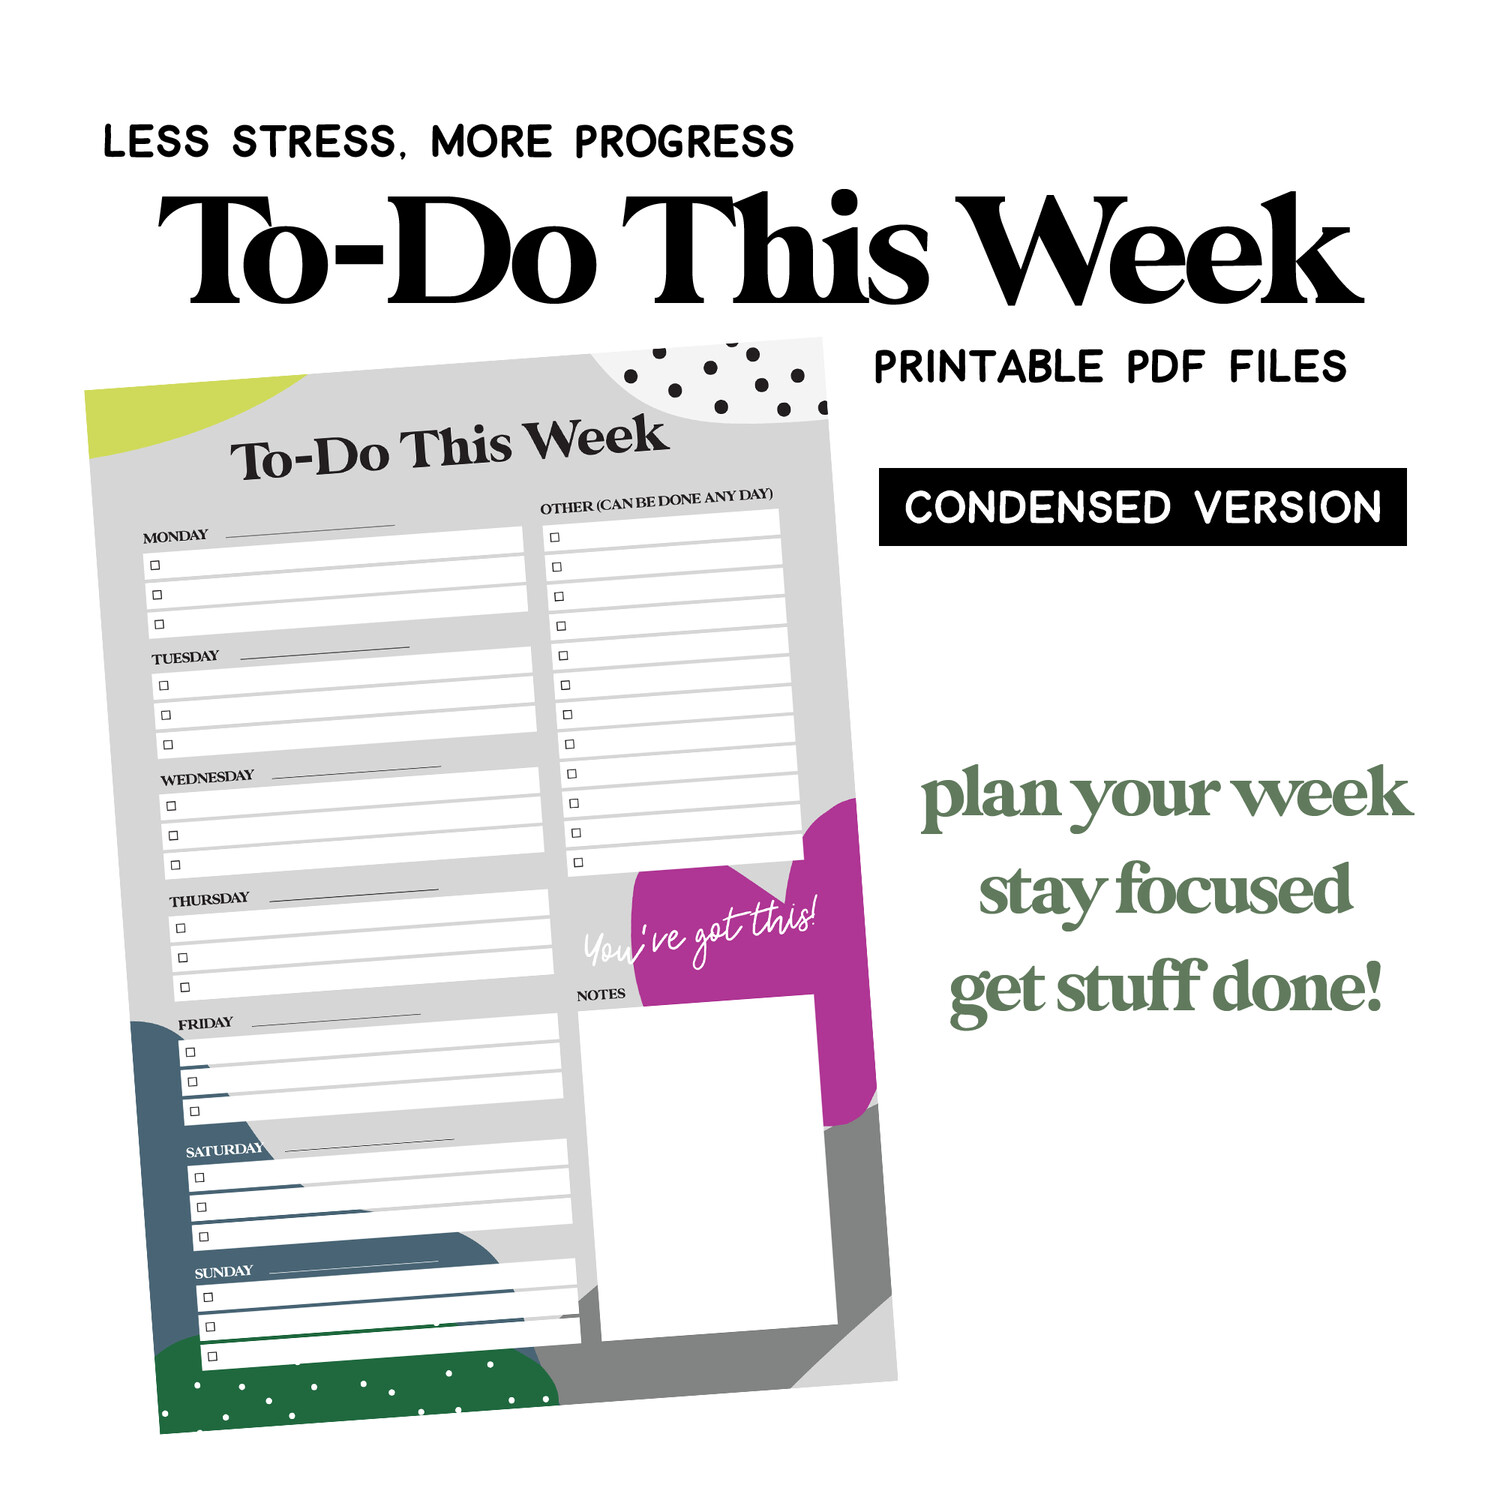 Printable Weekly To-Do List - 1 page download! Plan your week, stay focused, get stuff done!